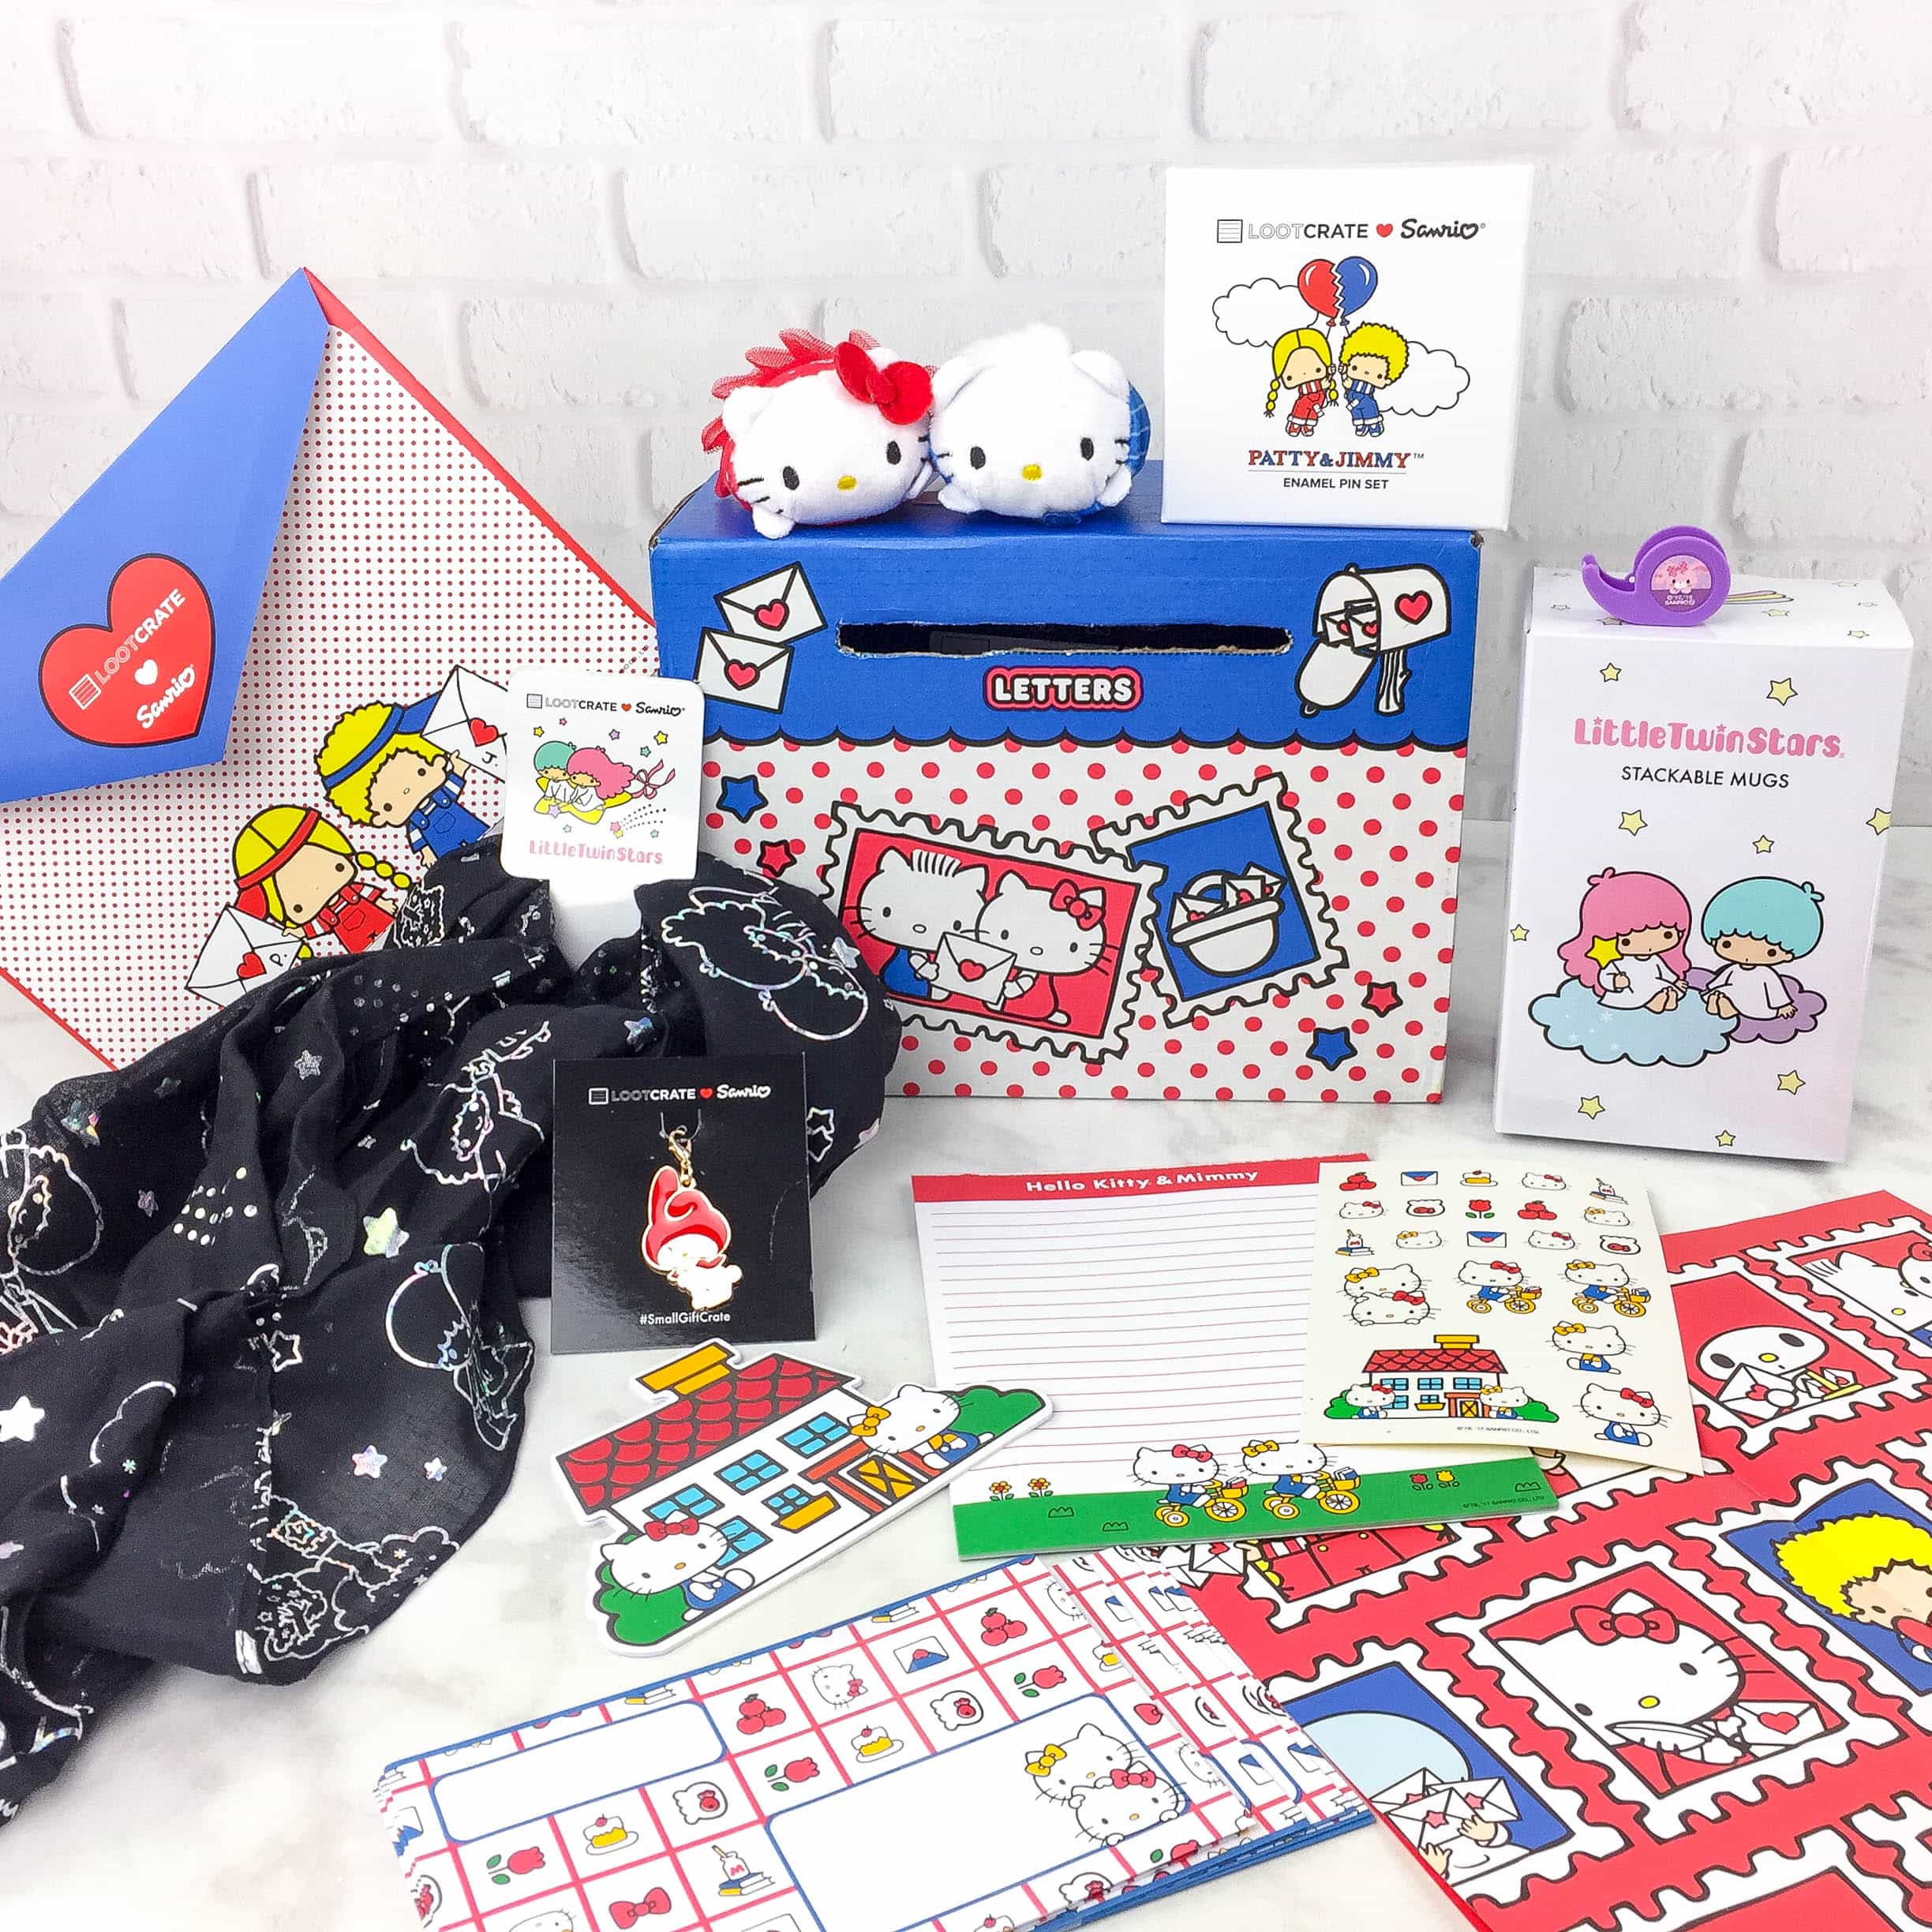 Sanrio Small Gift Crate Spring 2017 Subscription Box Review